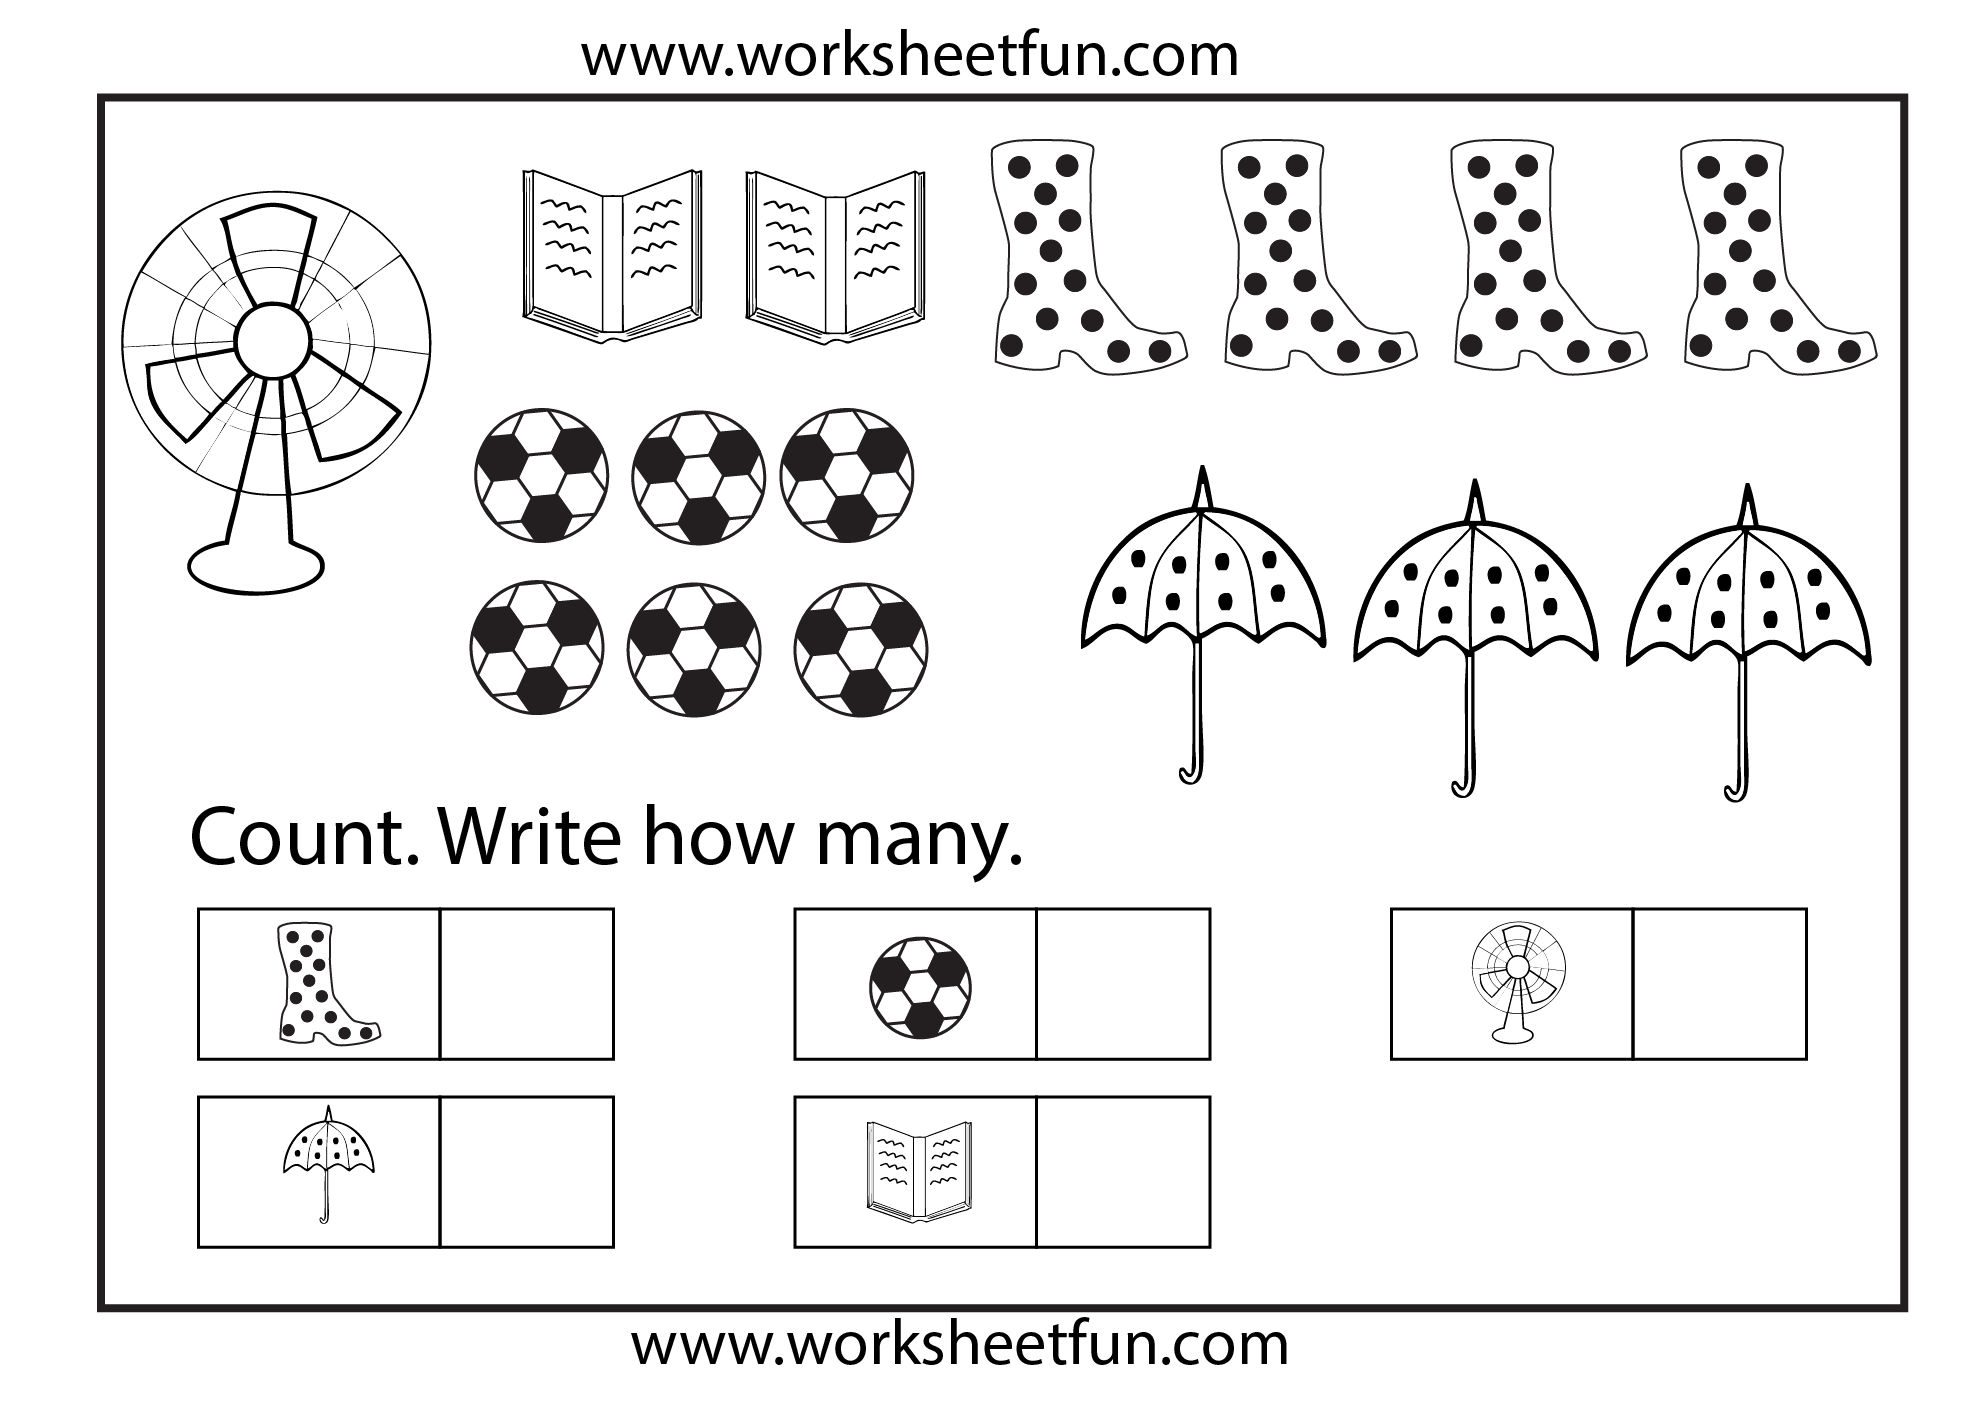 4 Best Images of Printable Worksheets Counting To 100 - Counting ...